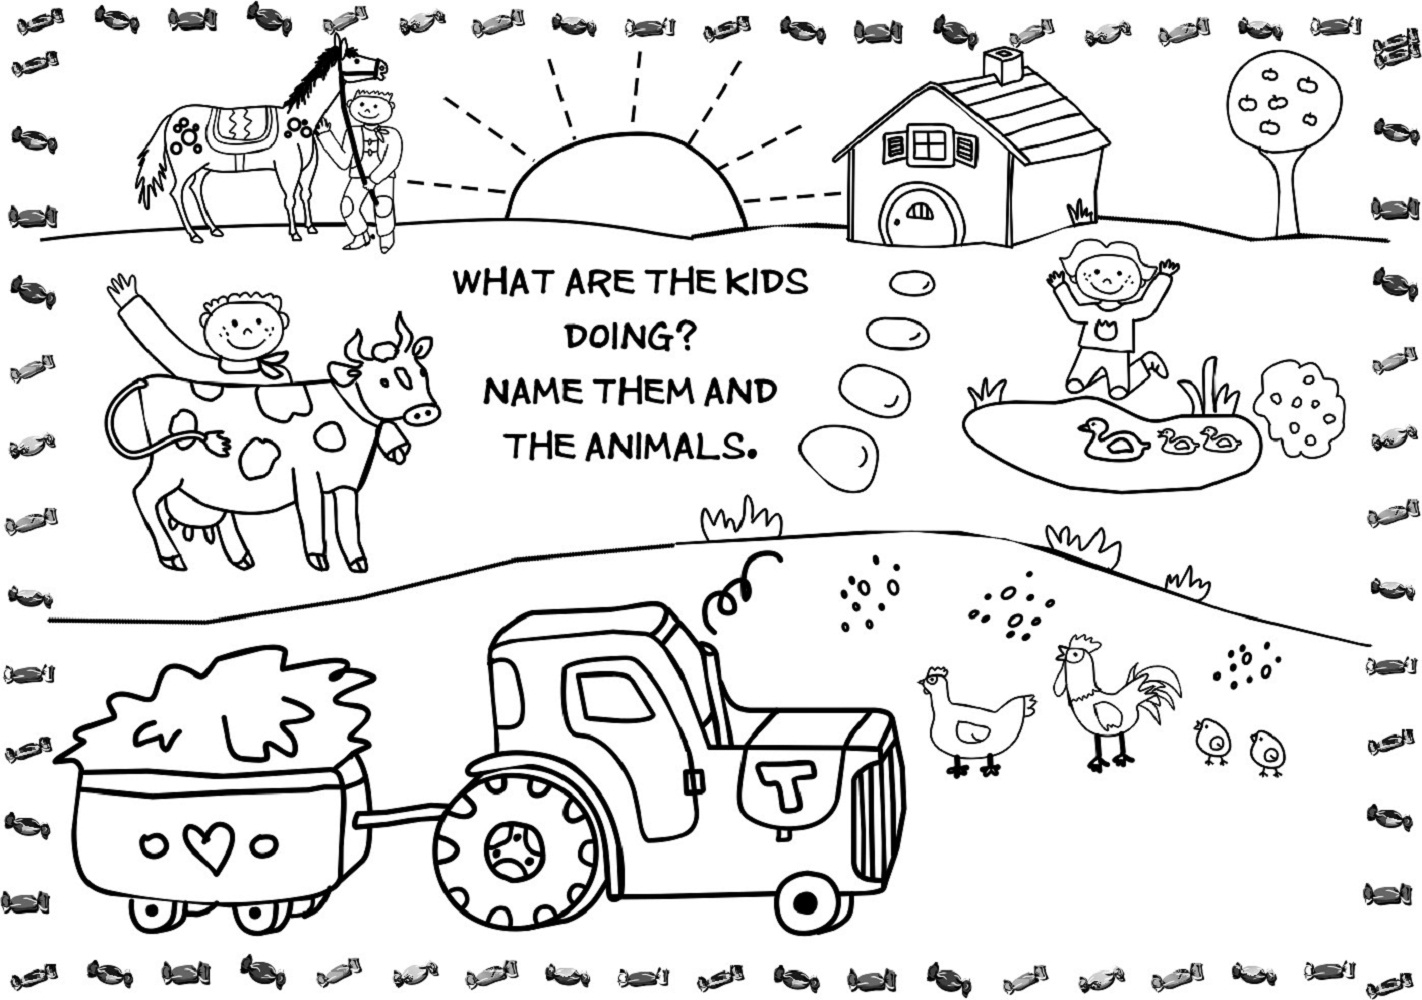 Compromise Activities Sheets For Kids Printable Activity 3644 1000 - Free Printable Activities For Kids